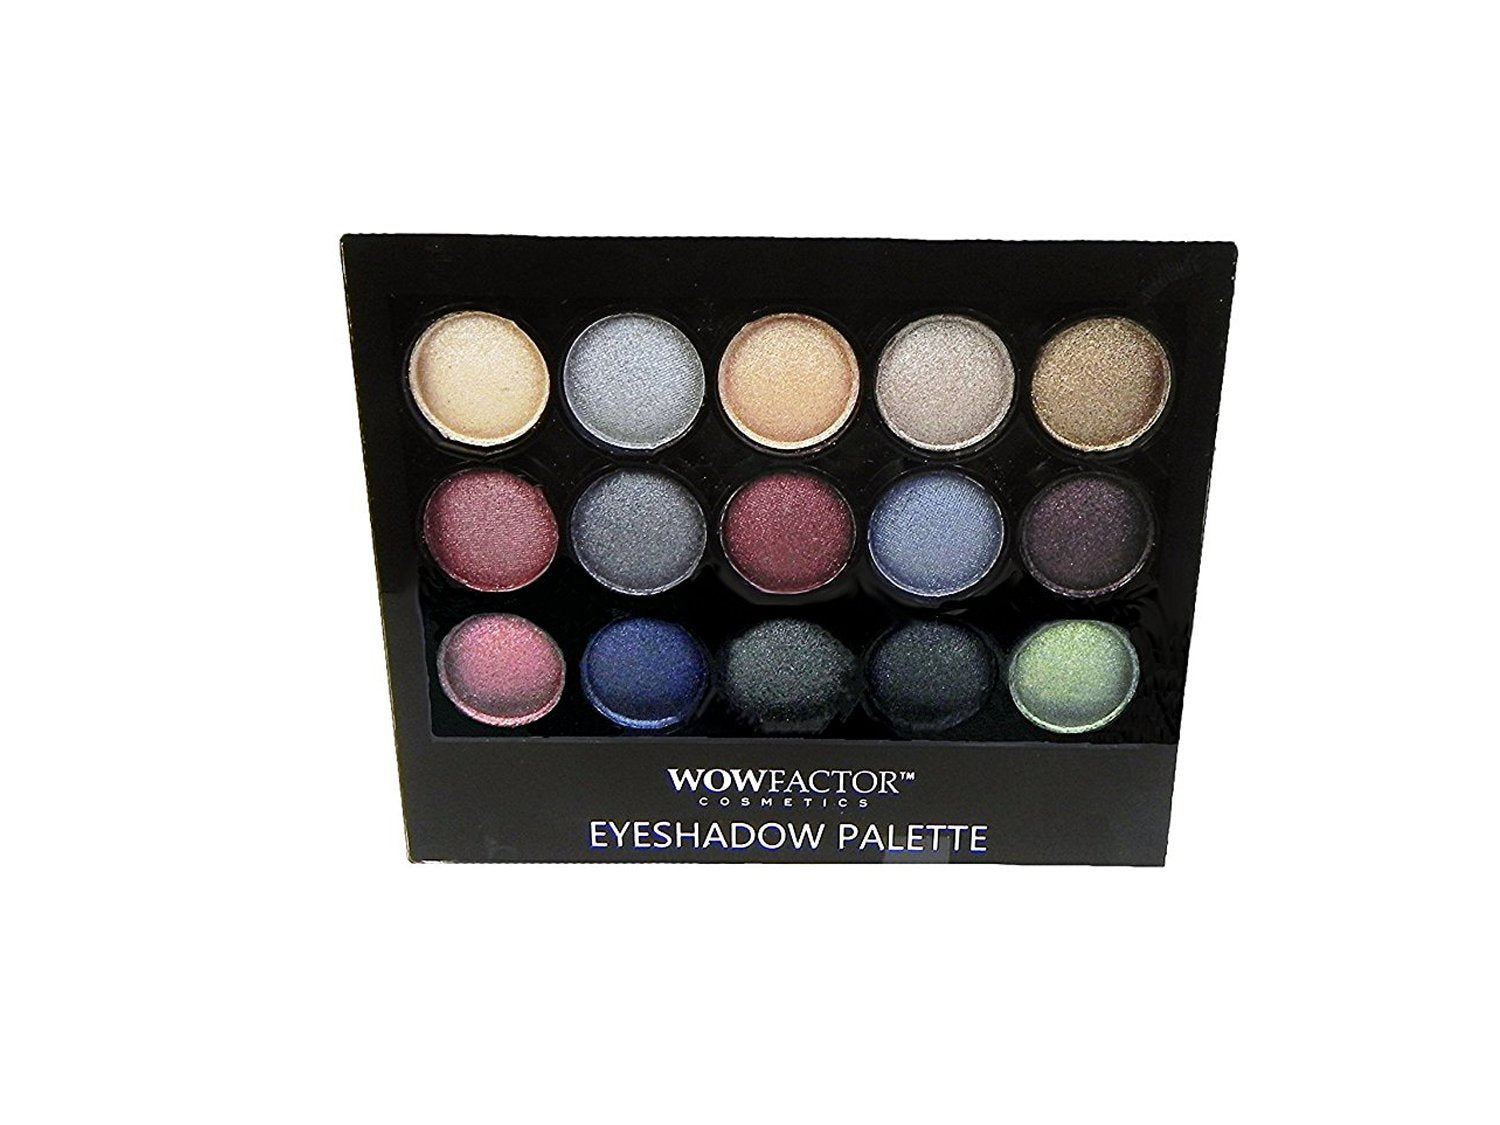 Wow Factor Cosmetics Eyeshadow Palette - Cool Tones